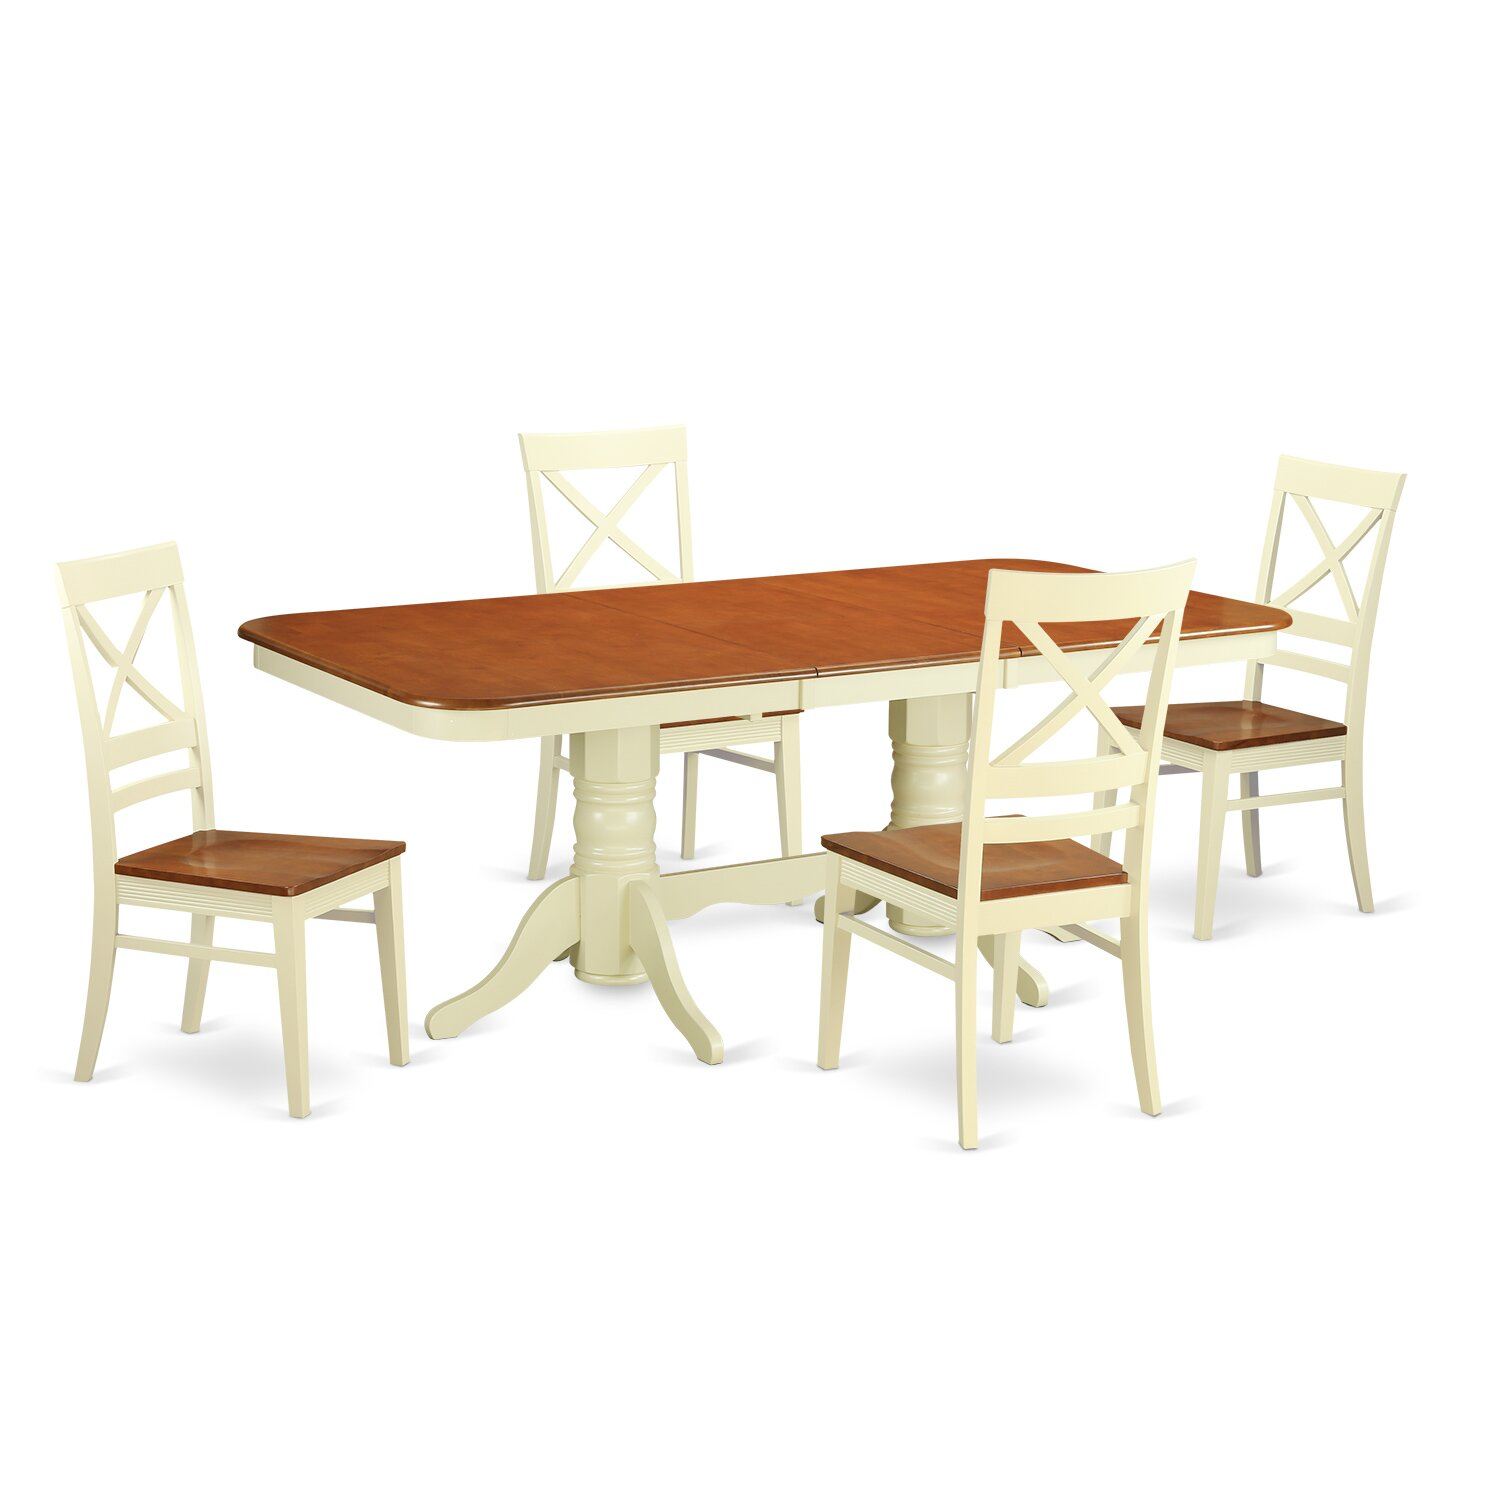 Wooden importers napoleon 5 piece dining set wayfair for Dinette furniture